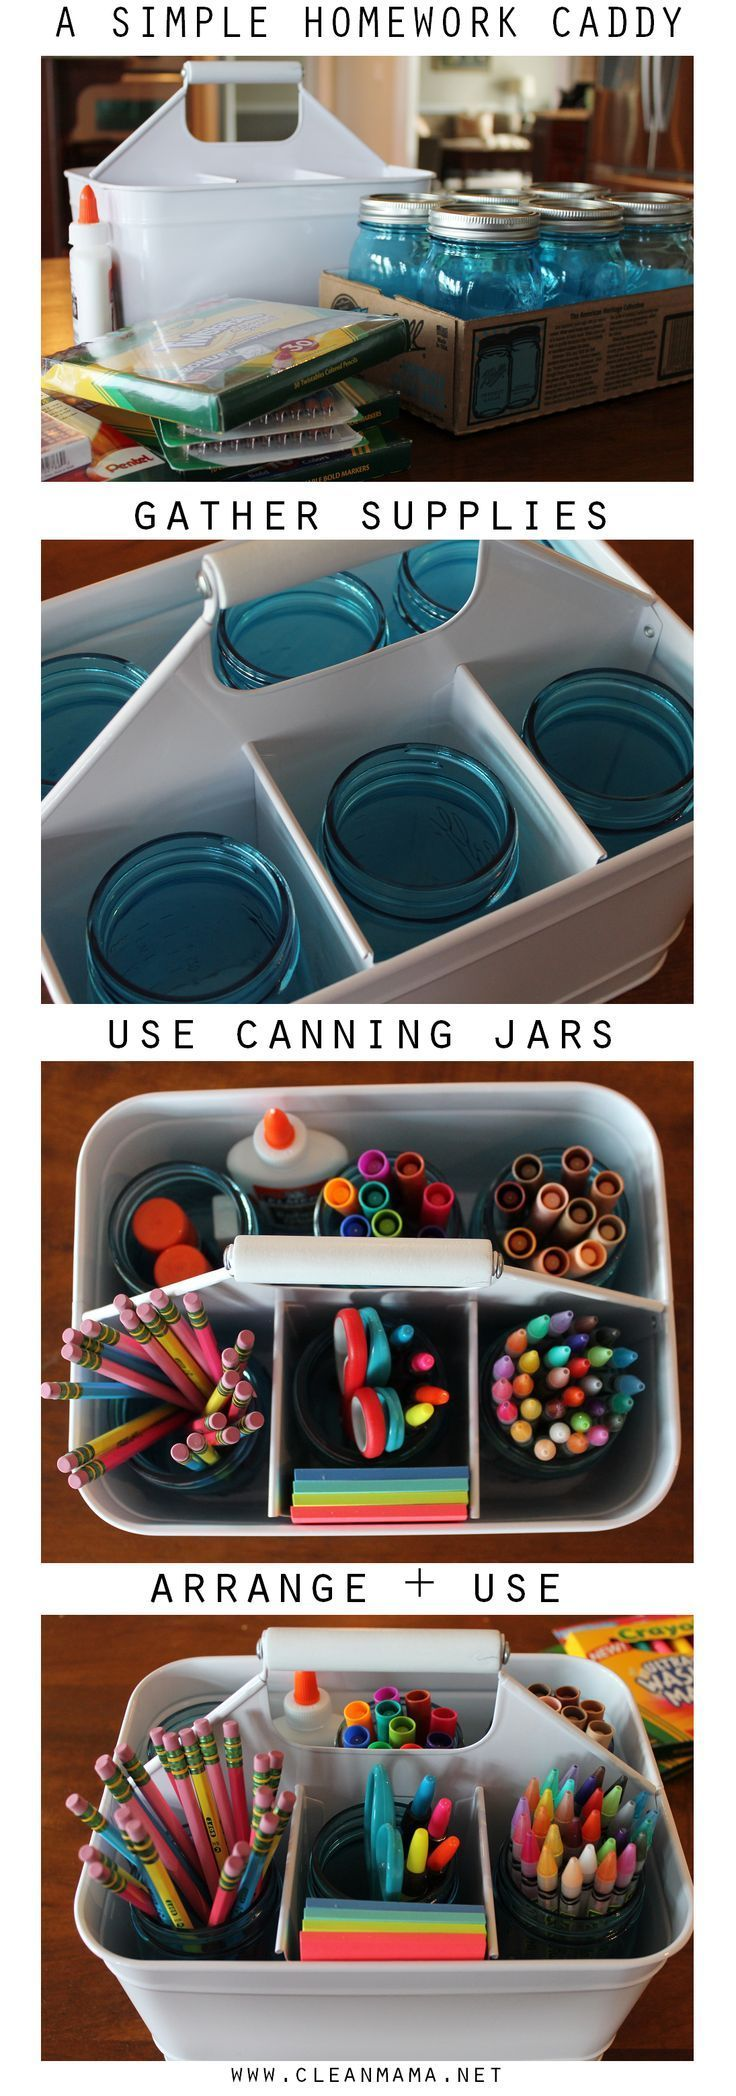 Just this little back to school project can make a big difference!  How to Make a Simple Homework Caddy | Clean Mama